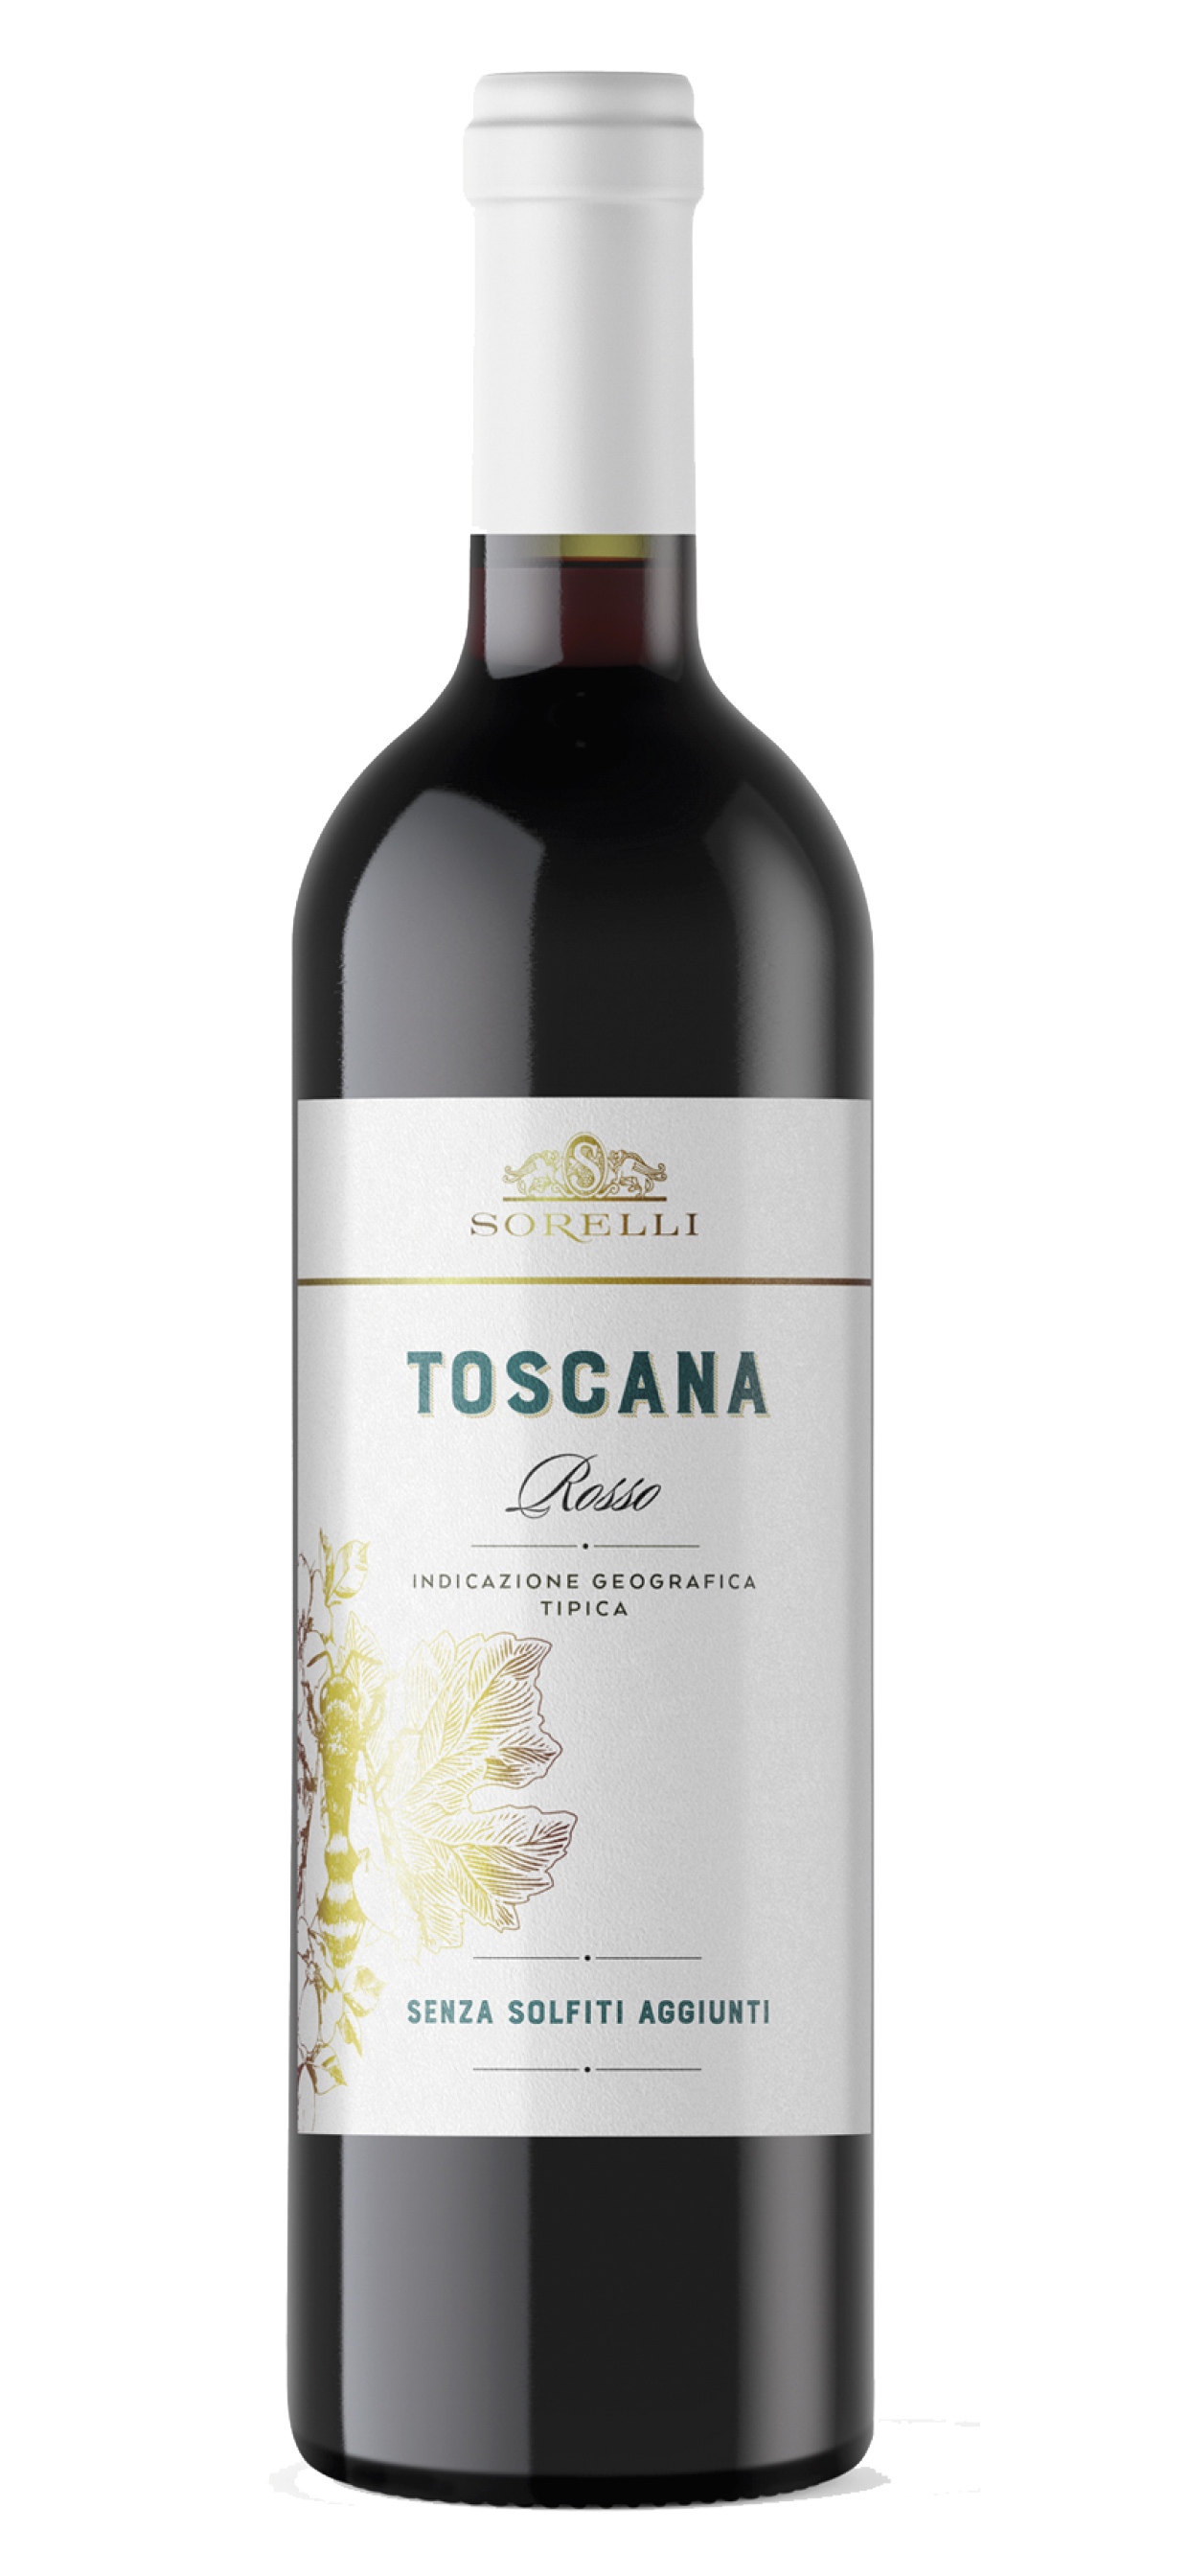 TOSCANO ROSSO WITHOUT SORELLI